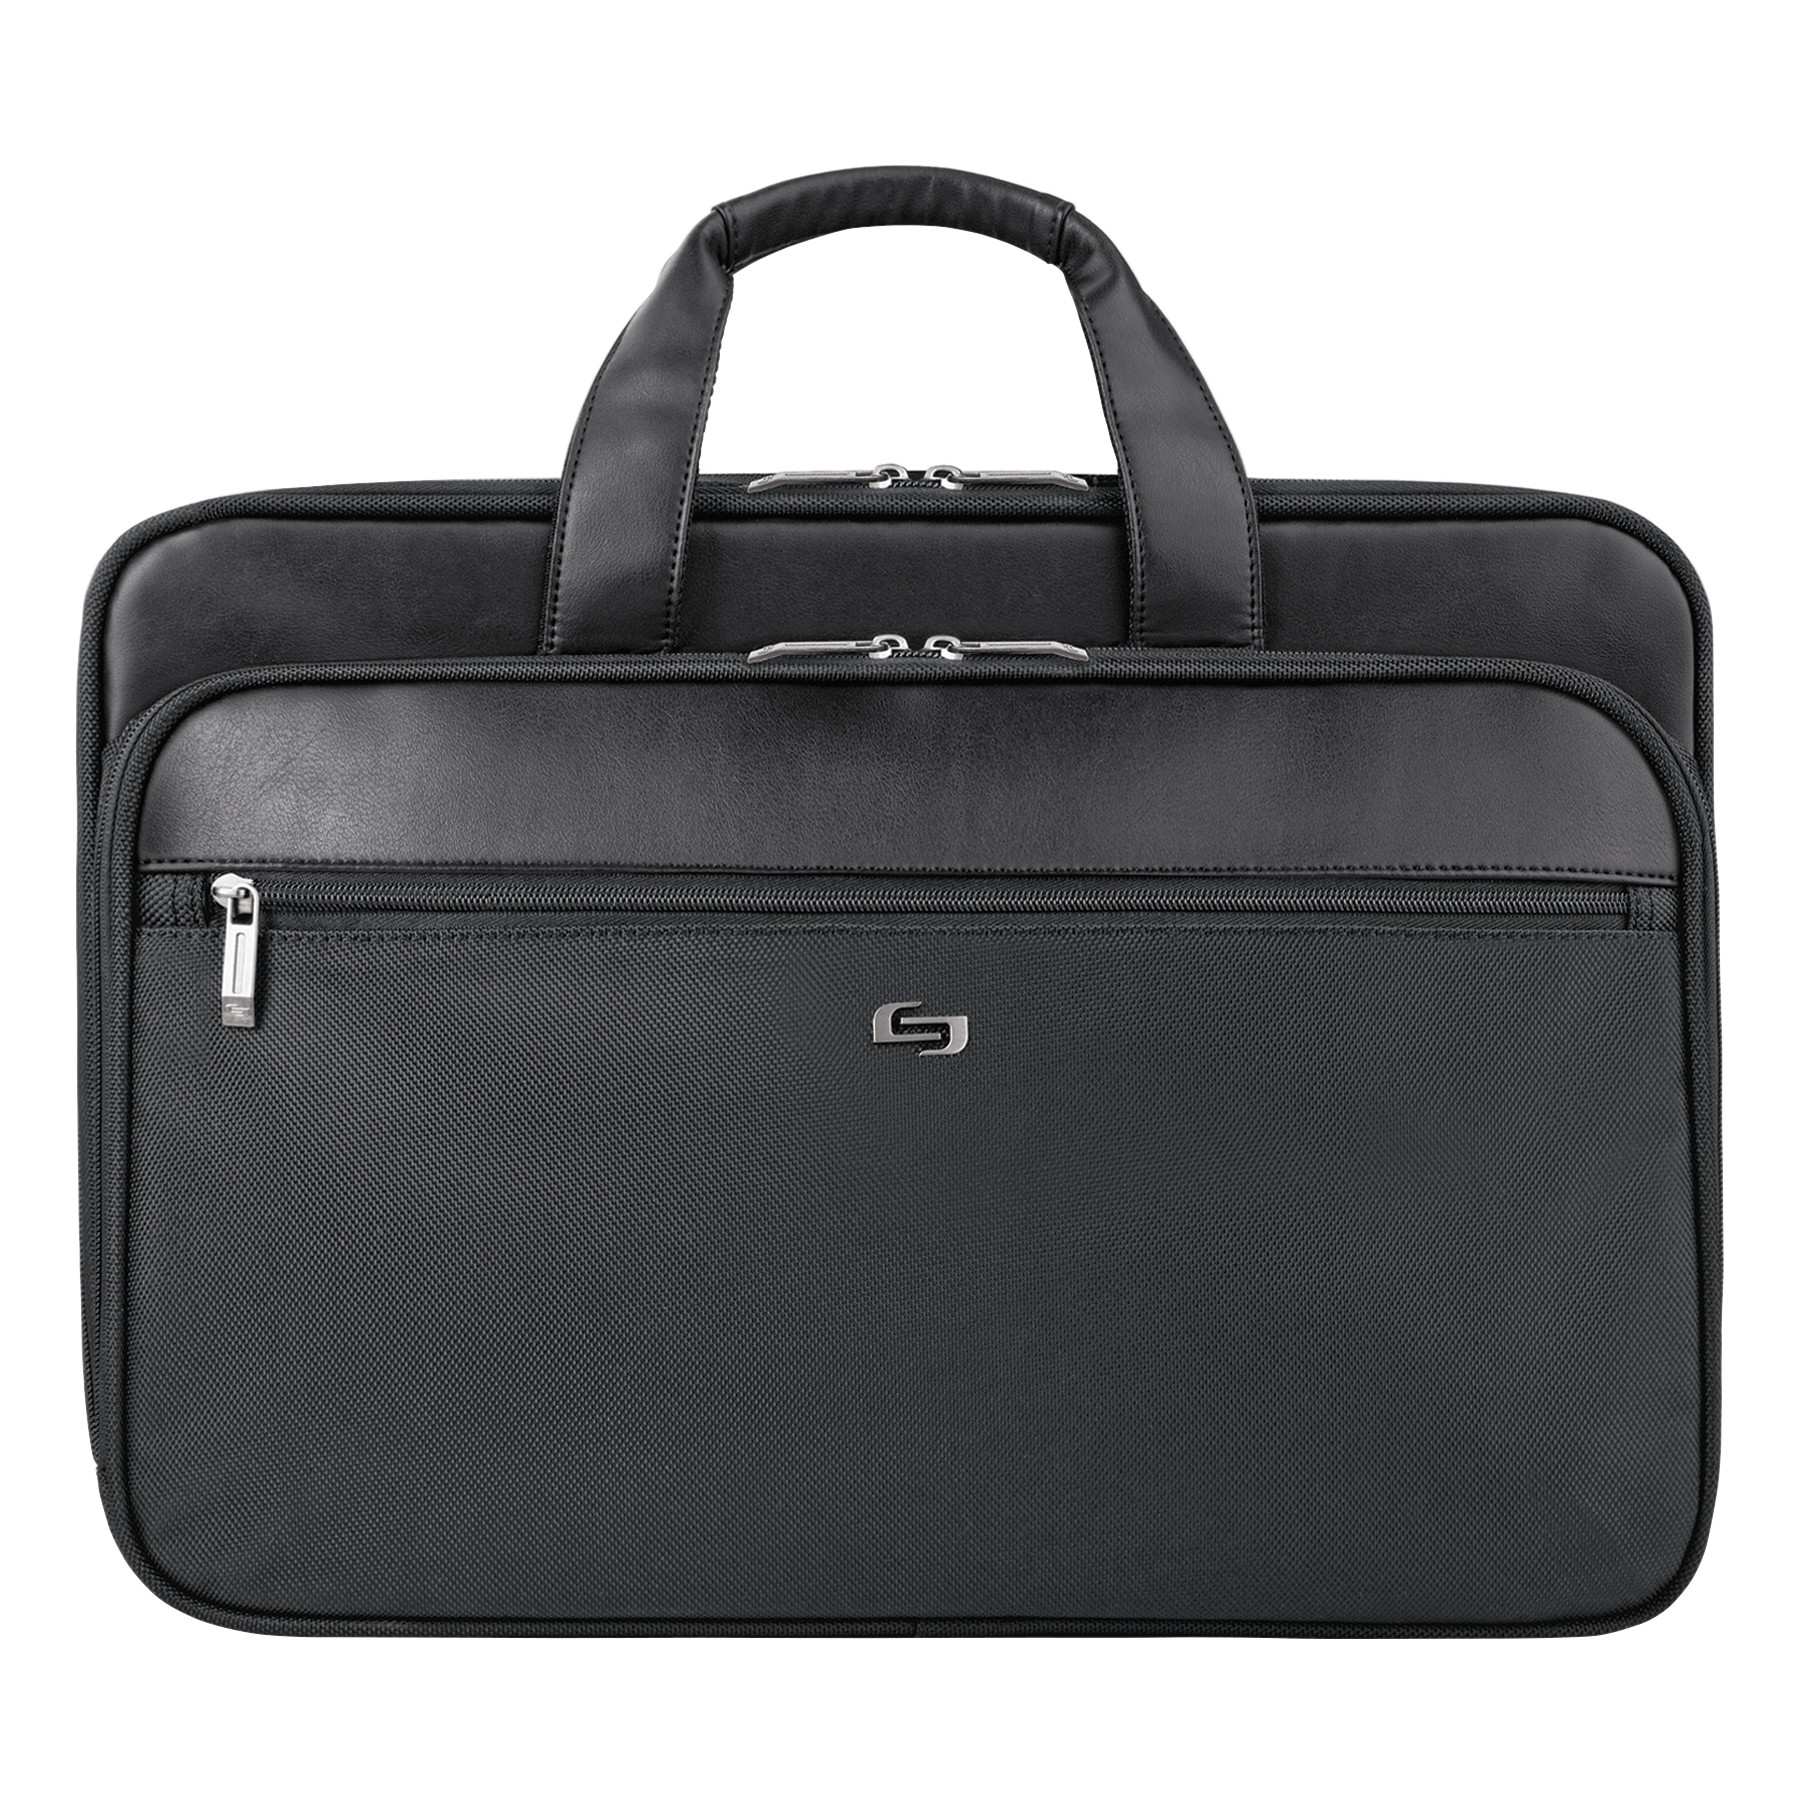 "Solo Classic Smart Strap Briefcase, 16"", 17 1/2"" x 5 1/2"" x 12"", Black"